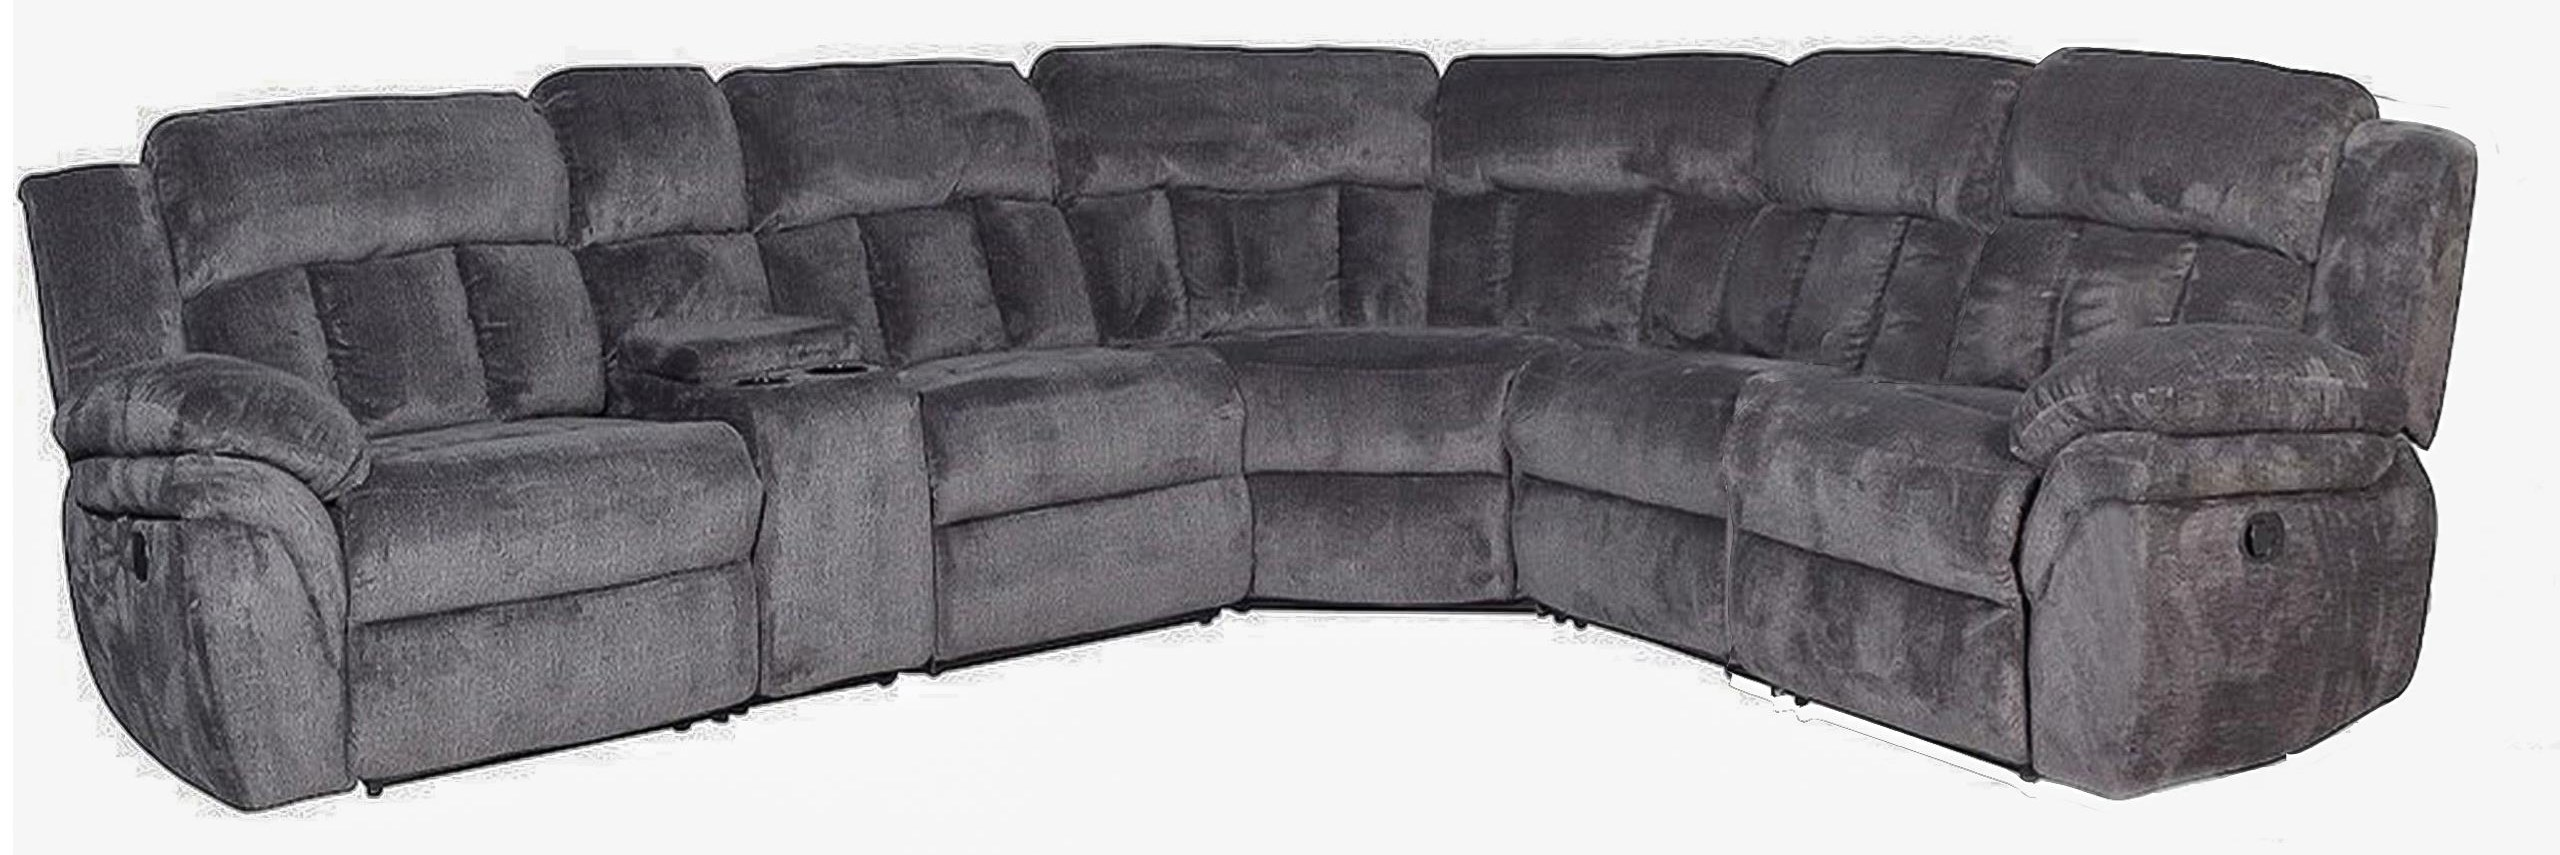 McCobb 4-Seat Reclining Sectional Sofa w/ Cupholder by Klaussner International at Beck's Furniture